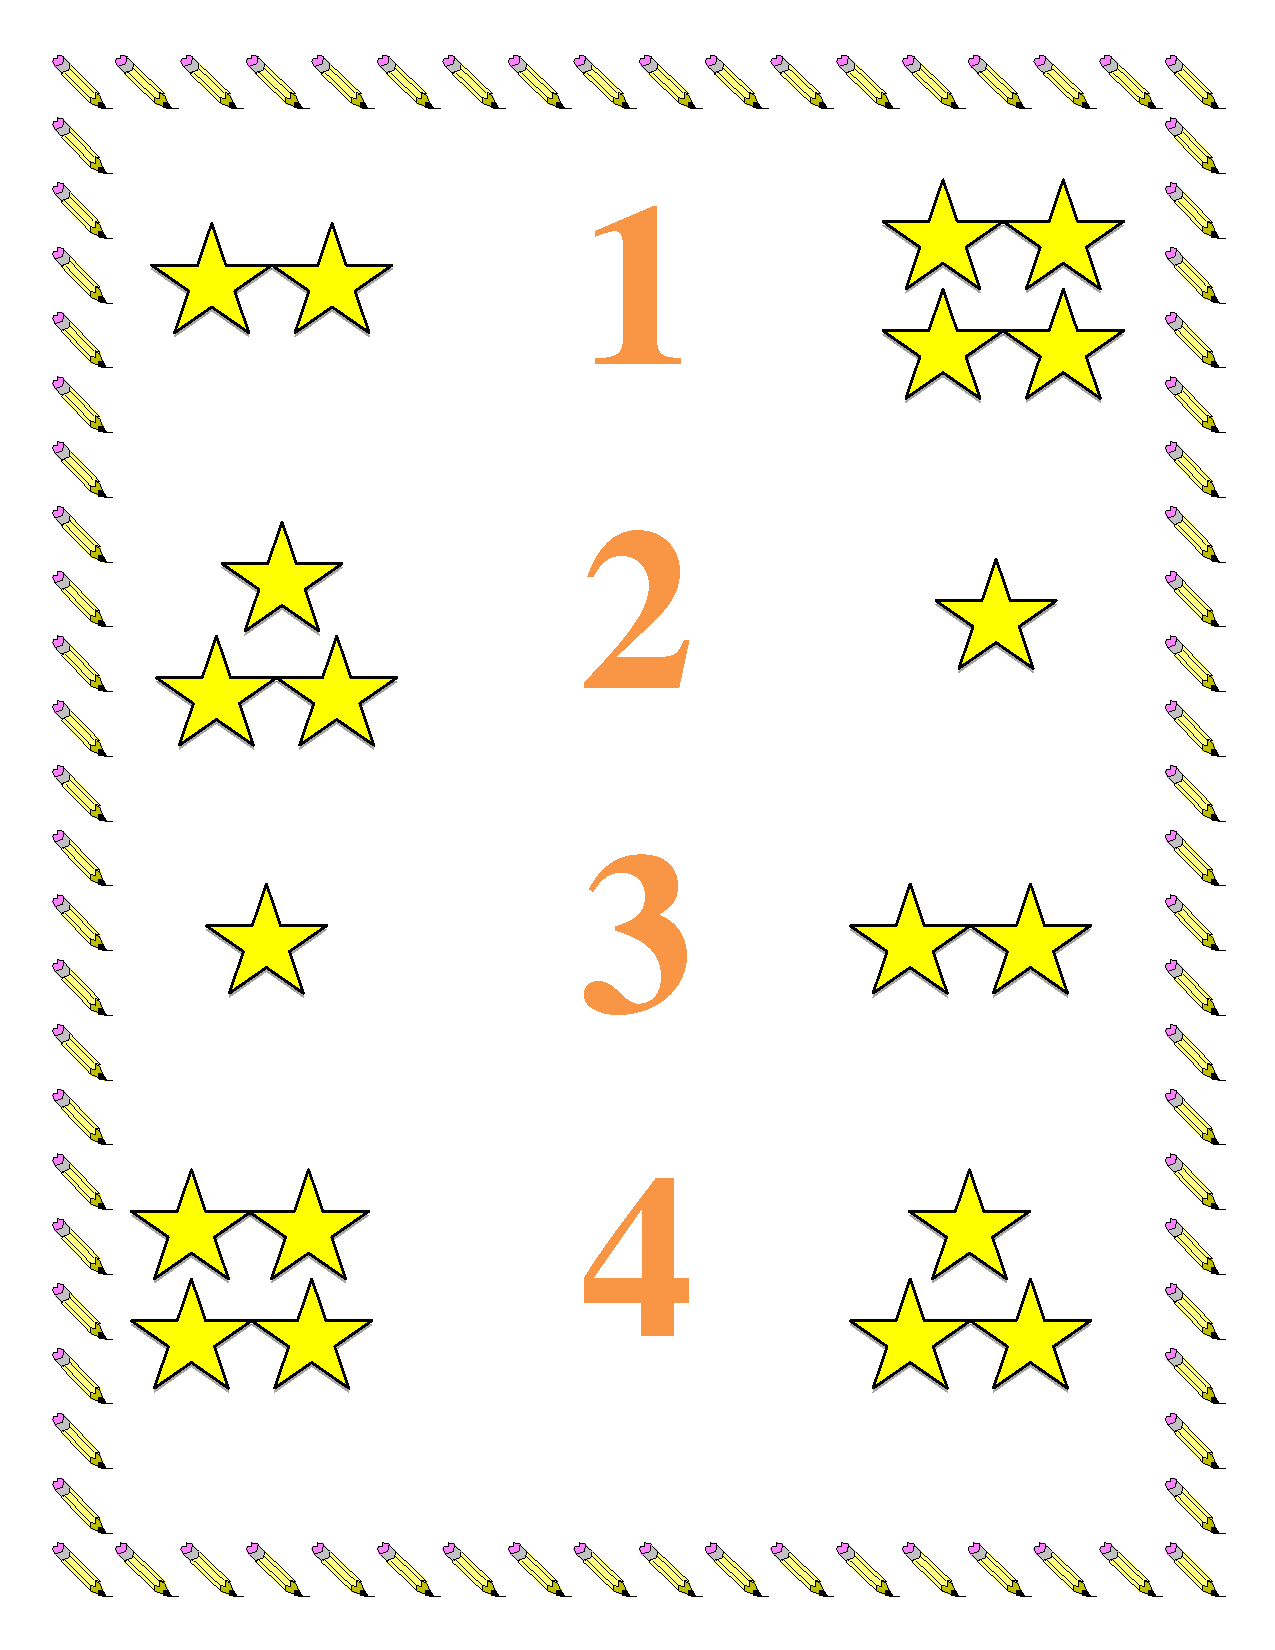 preschool worksheets Preschool Math Worksheet Numbers 14 – Preschool Matching Worksheets